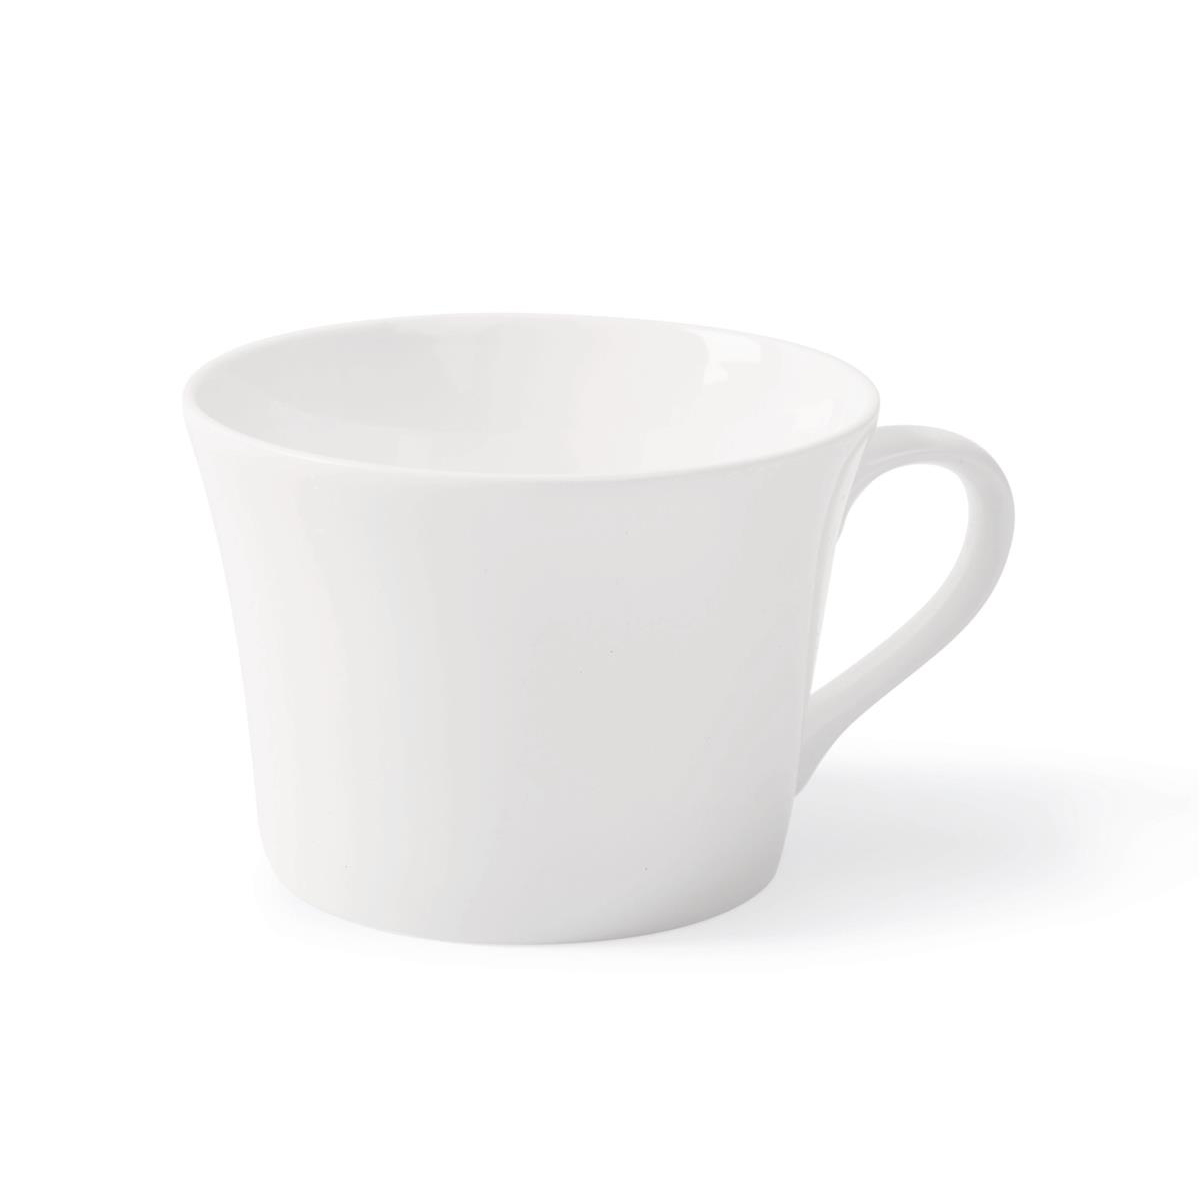 5 Star Facilities Fine Bone China Teacup White [Pack 6]